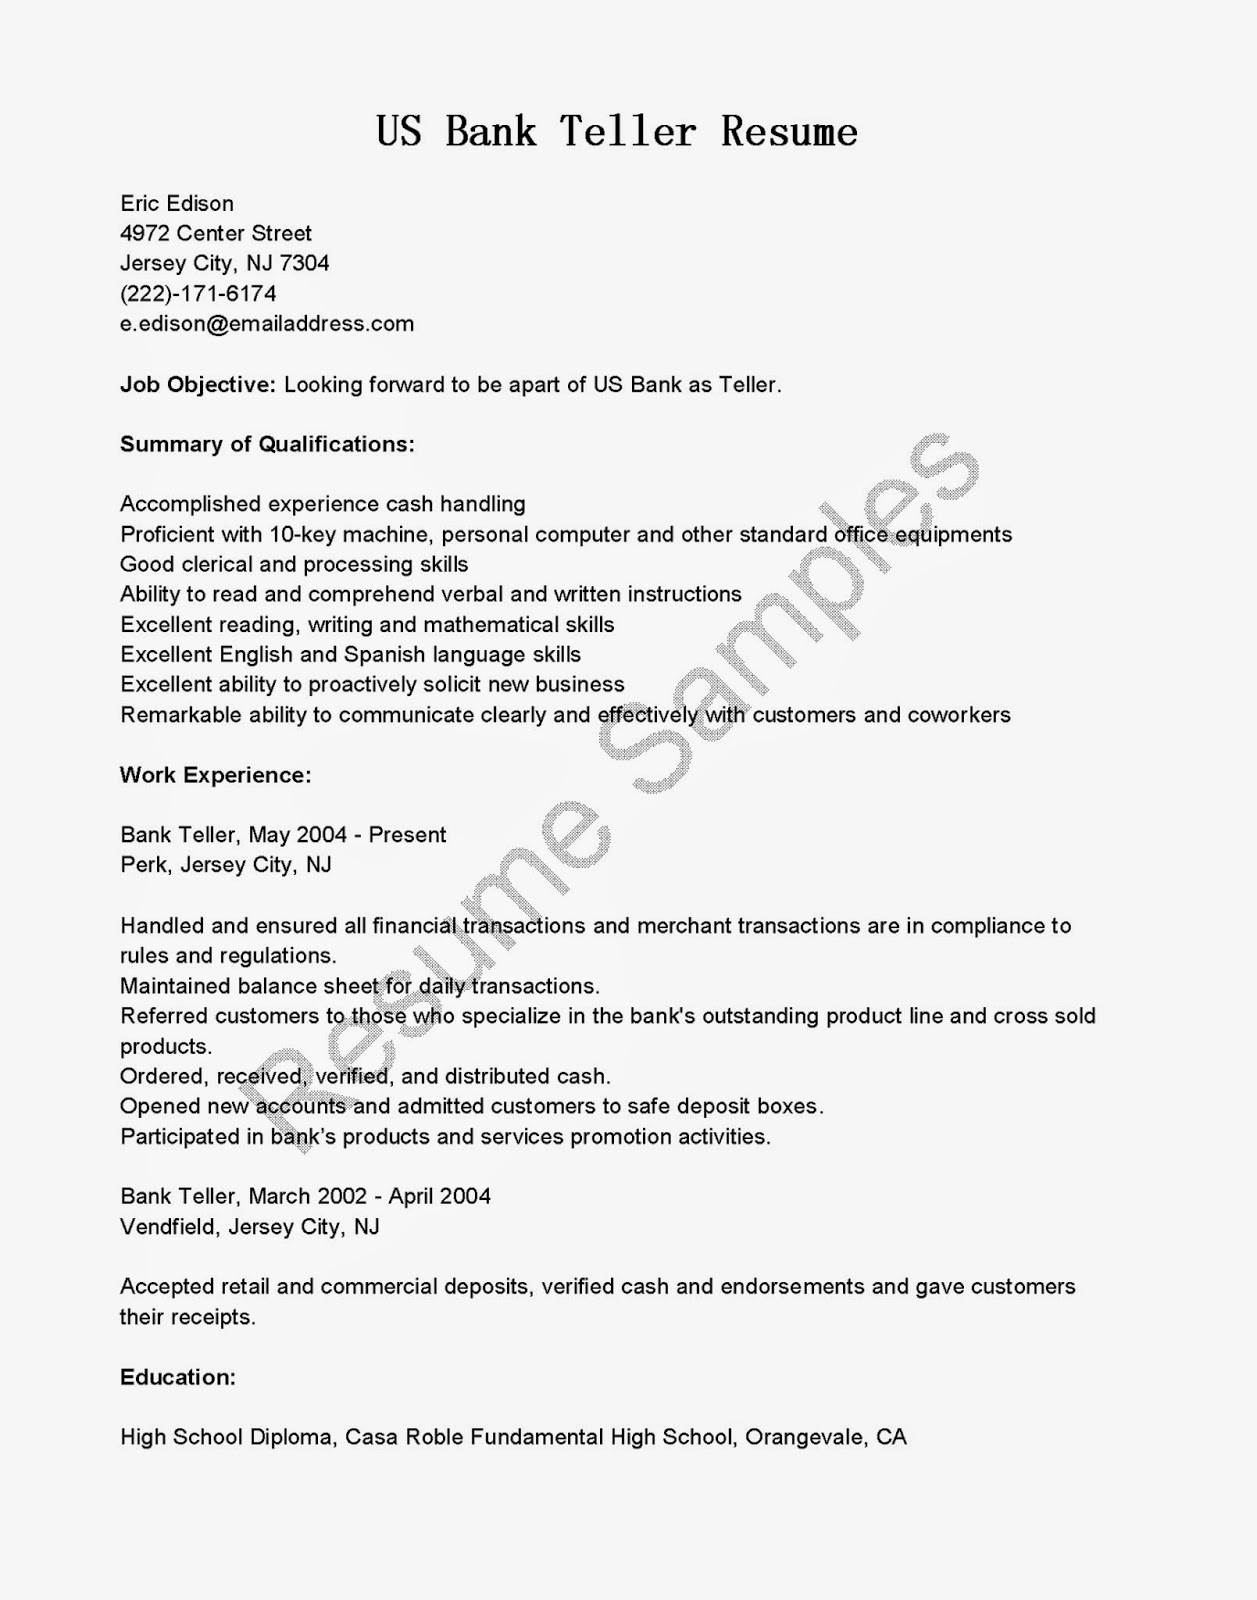 resume cover letters for bank tellers sample service resume resume cover letters for bank tellers bank branch manager resume best sample resume teller manager resume high school